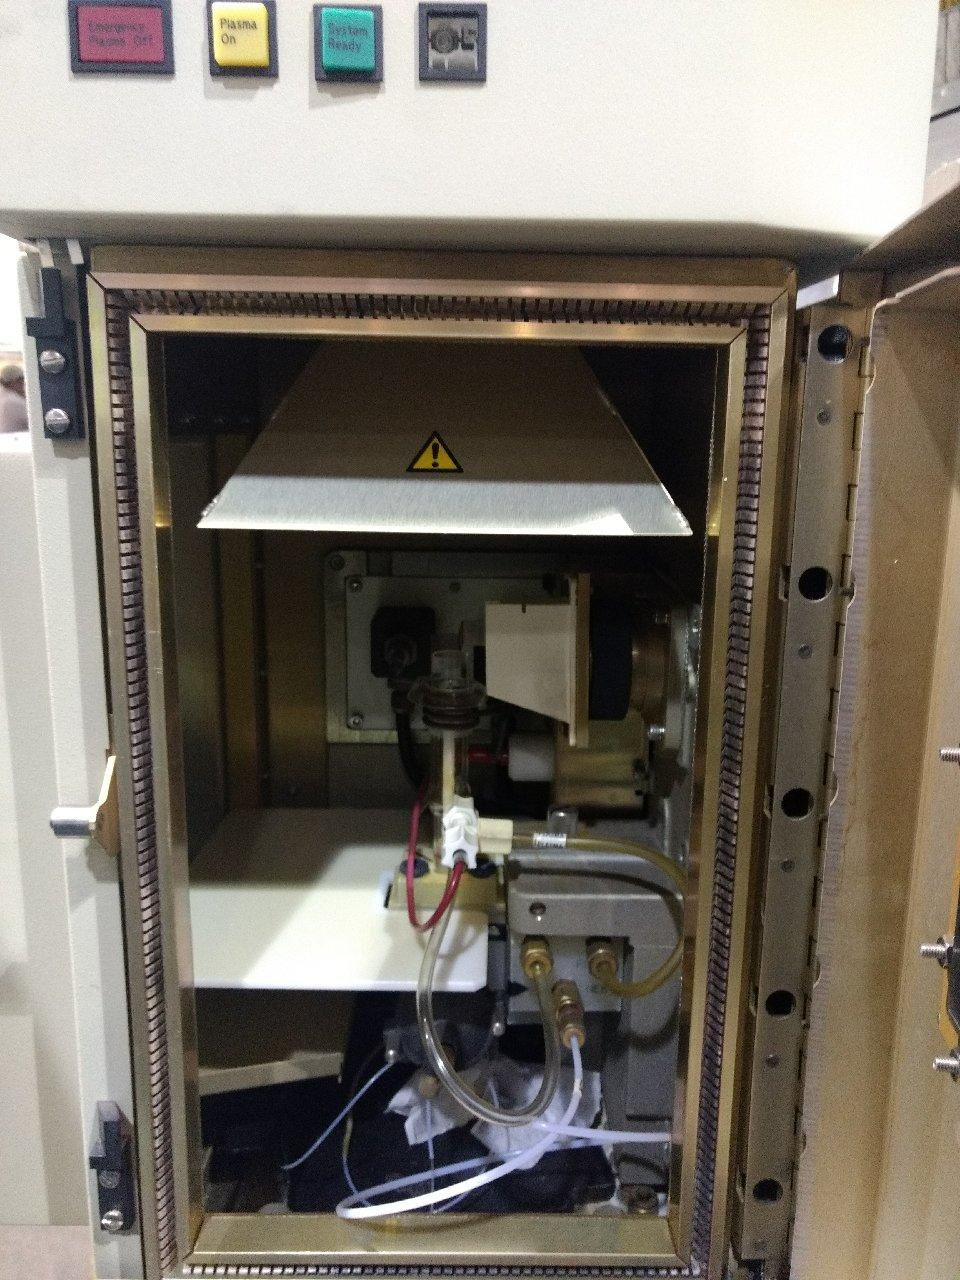 Perkin Elmer Optima 3300 RL Spectrometer